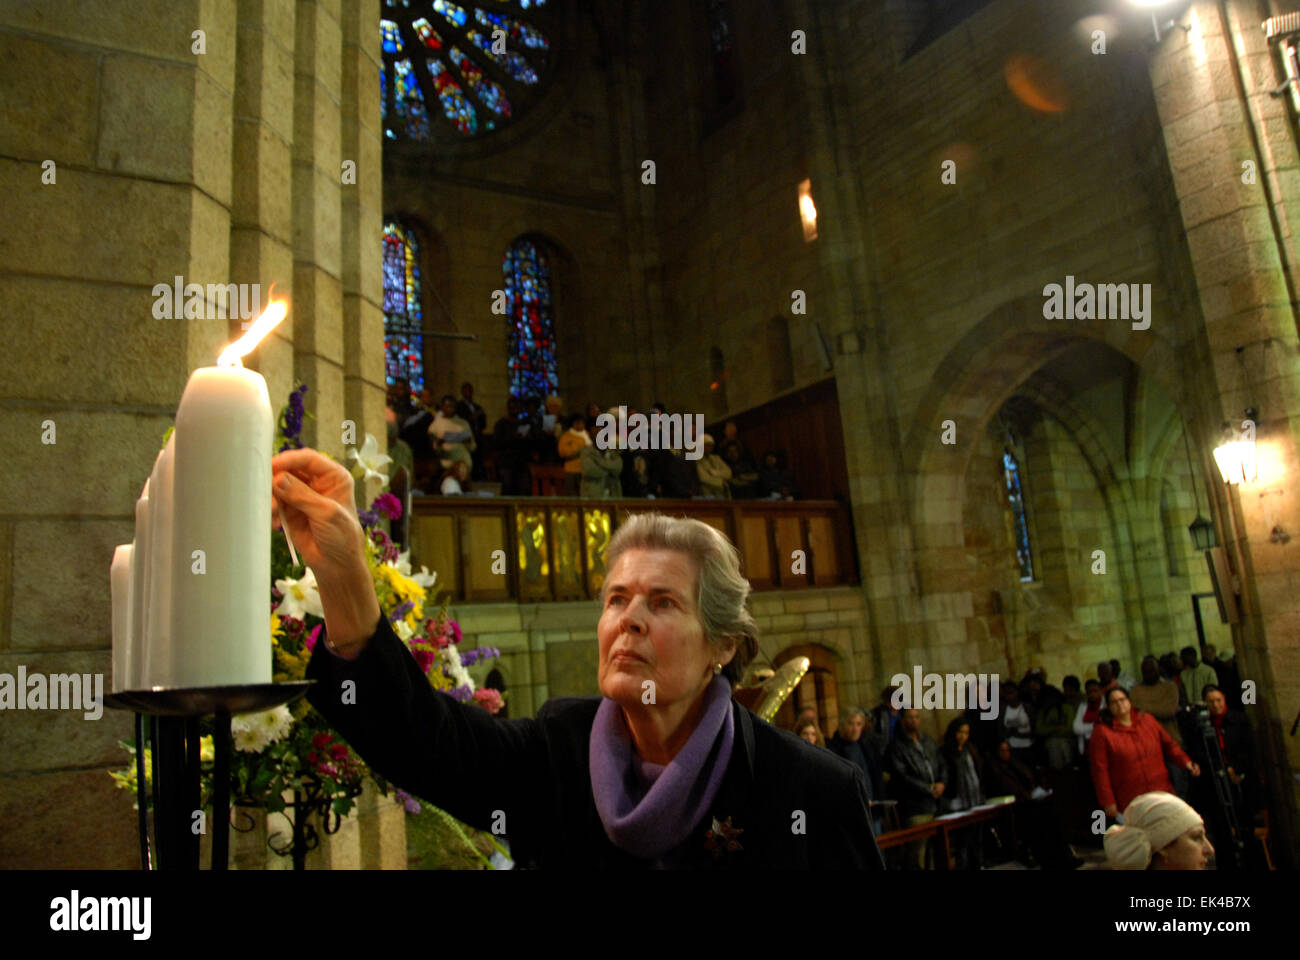 Mary Burton lights candles at commemoration service for 1989 Peace March, St George's cathedral,sept 2009. - Stock Image